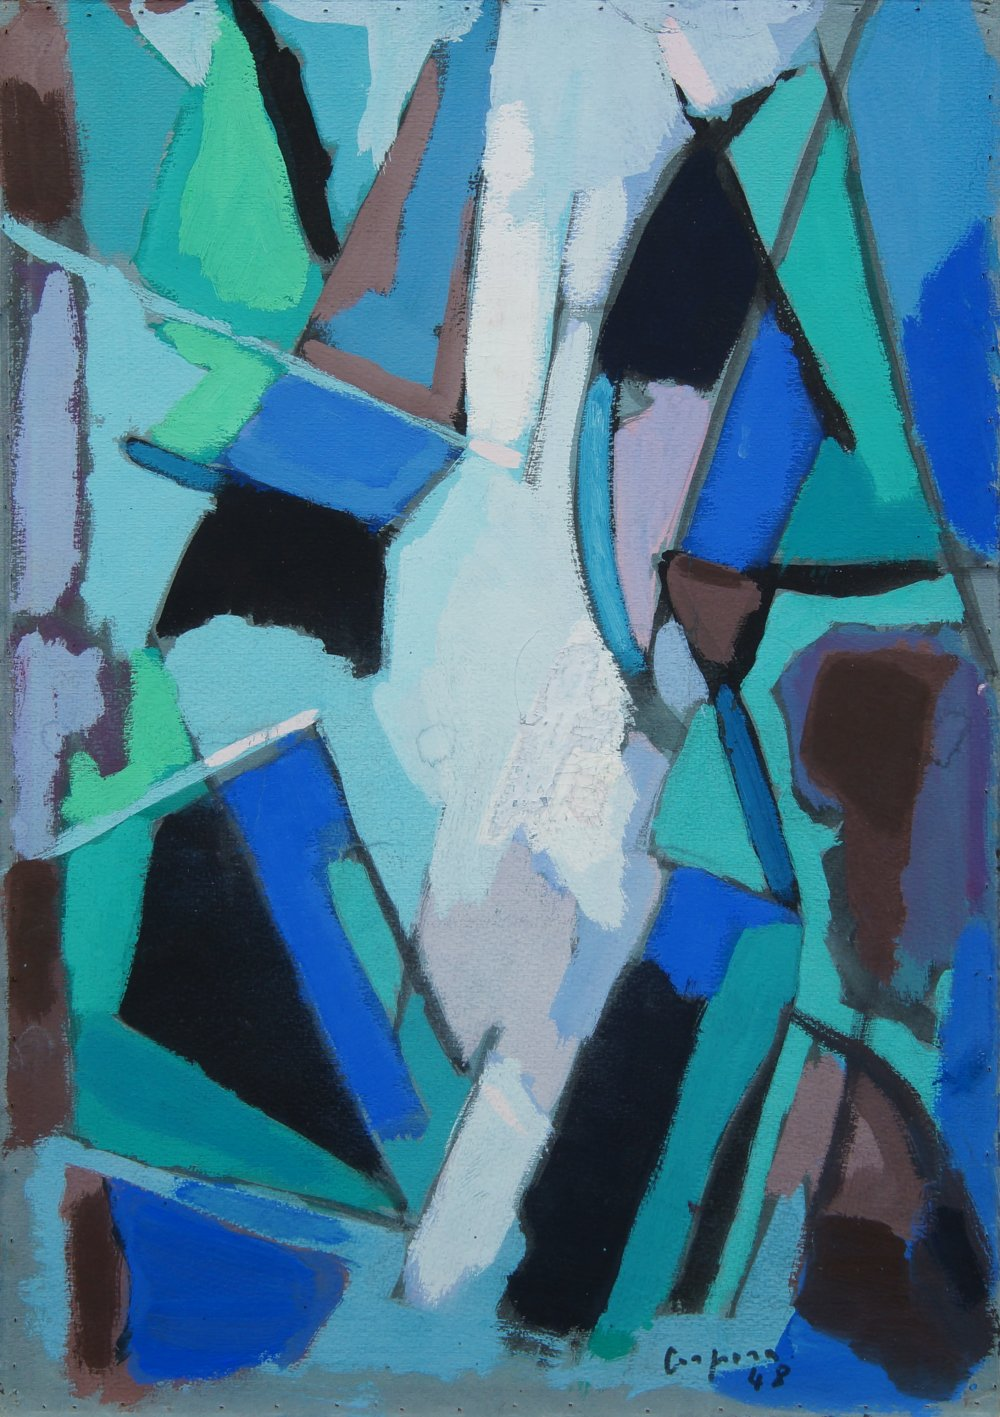 Abstract in blue and green